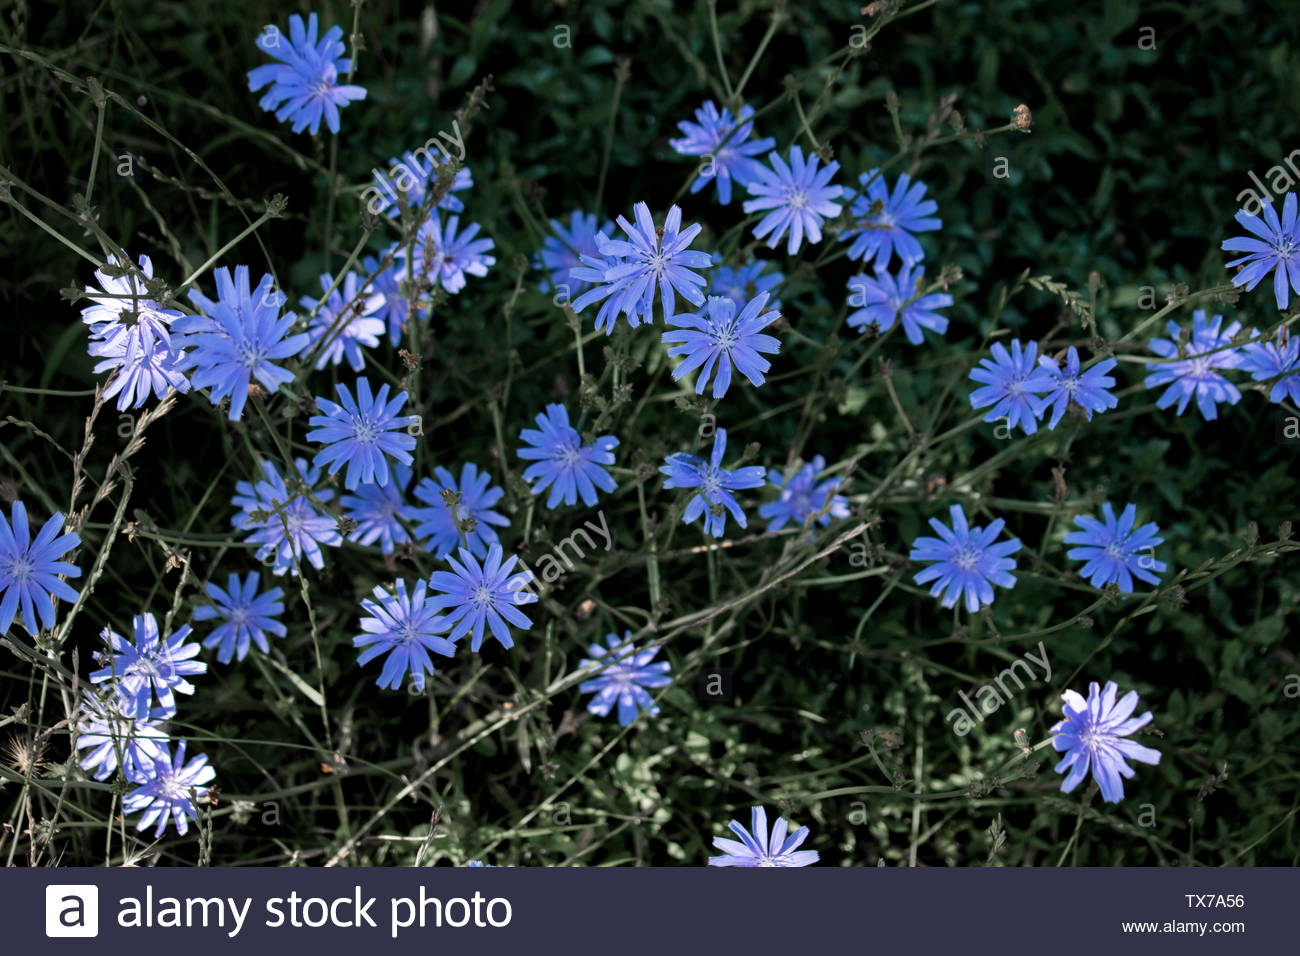 beautiful blue flowers that grow in the summer in Europe. After a rainy day. - Stock Image